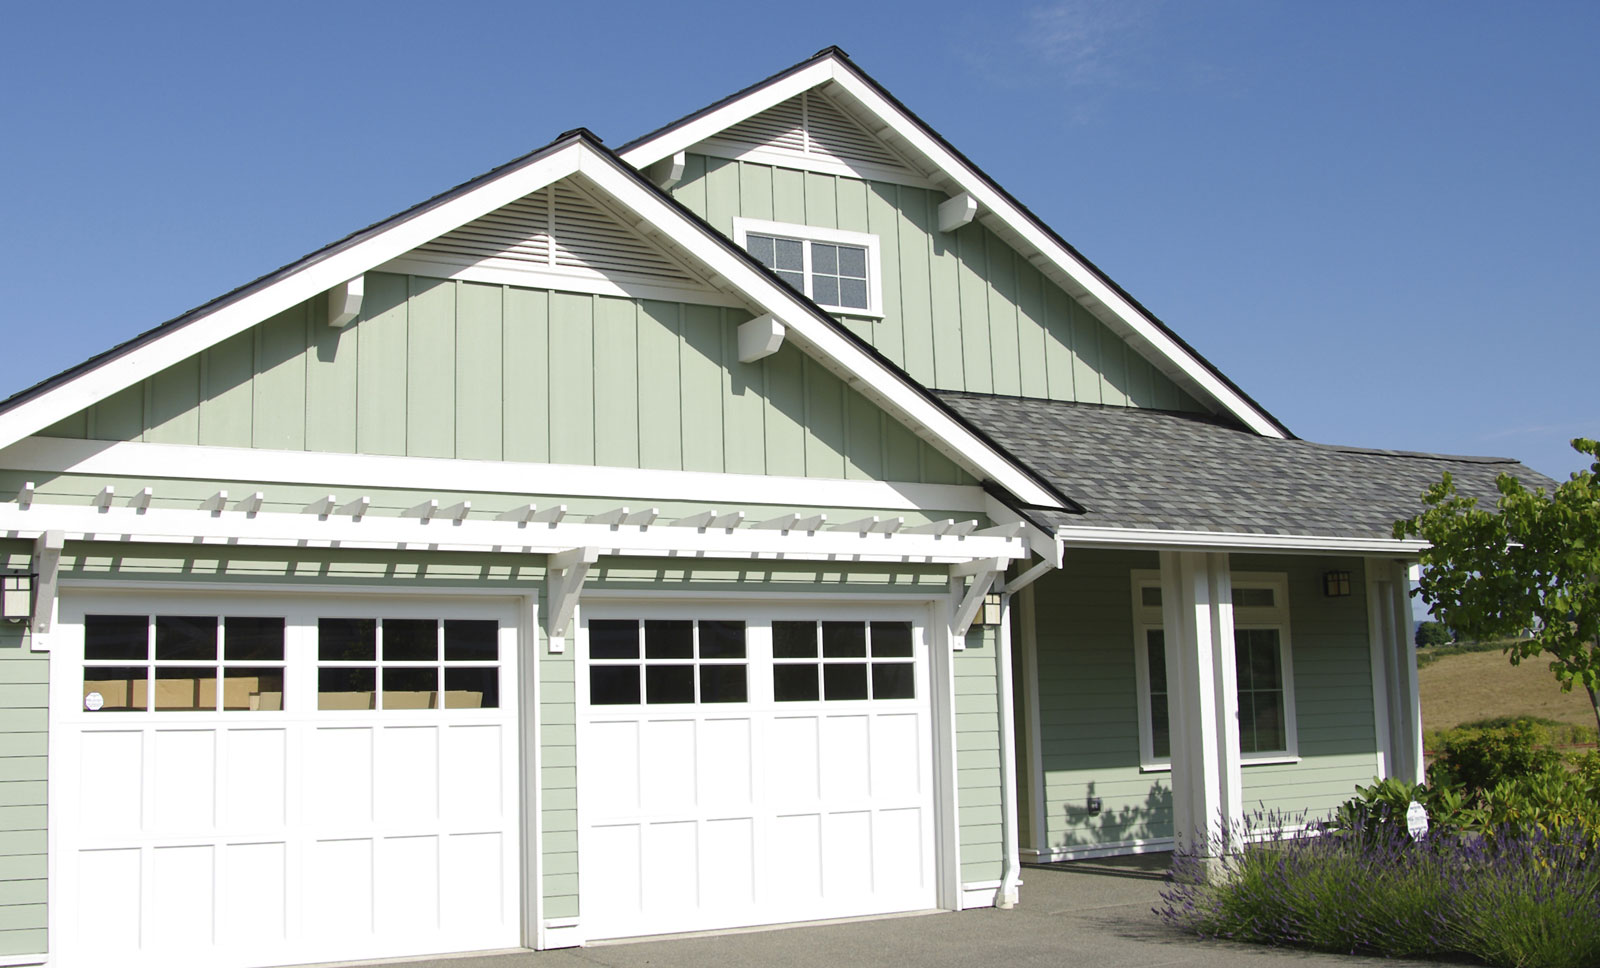 Energy efficient garage doors save on your bills a team for Energy efficient garage doors